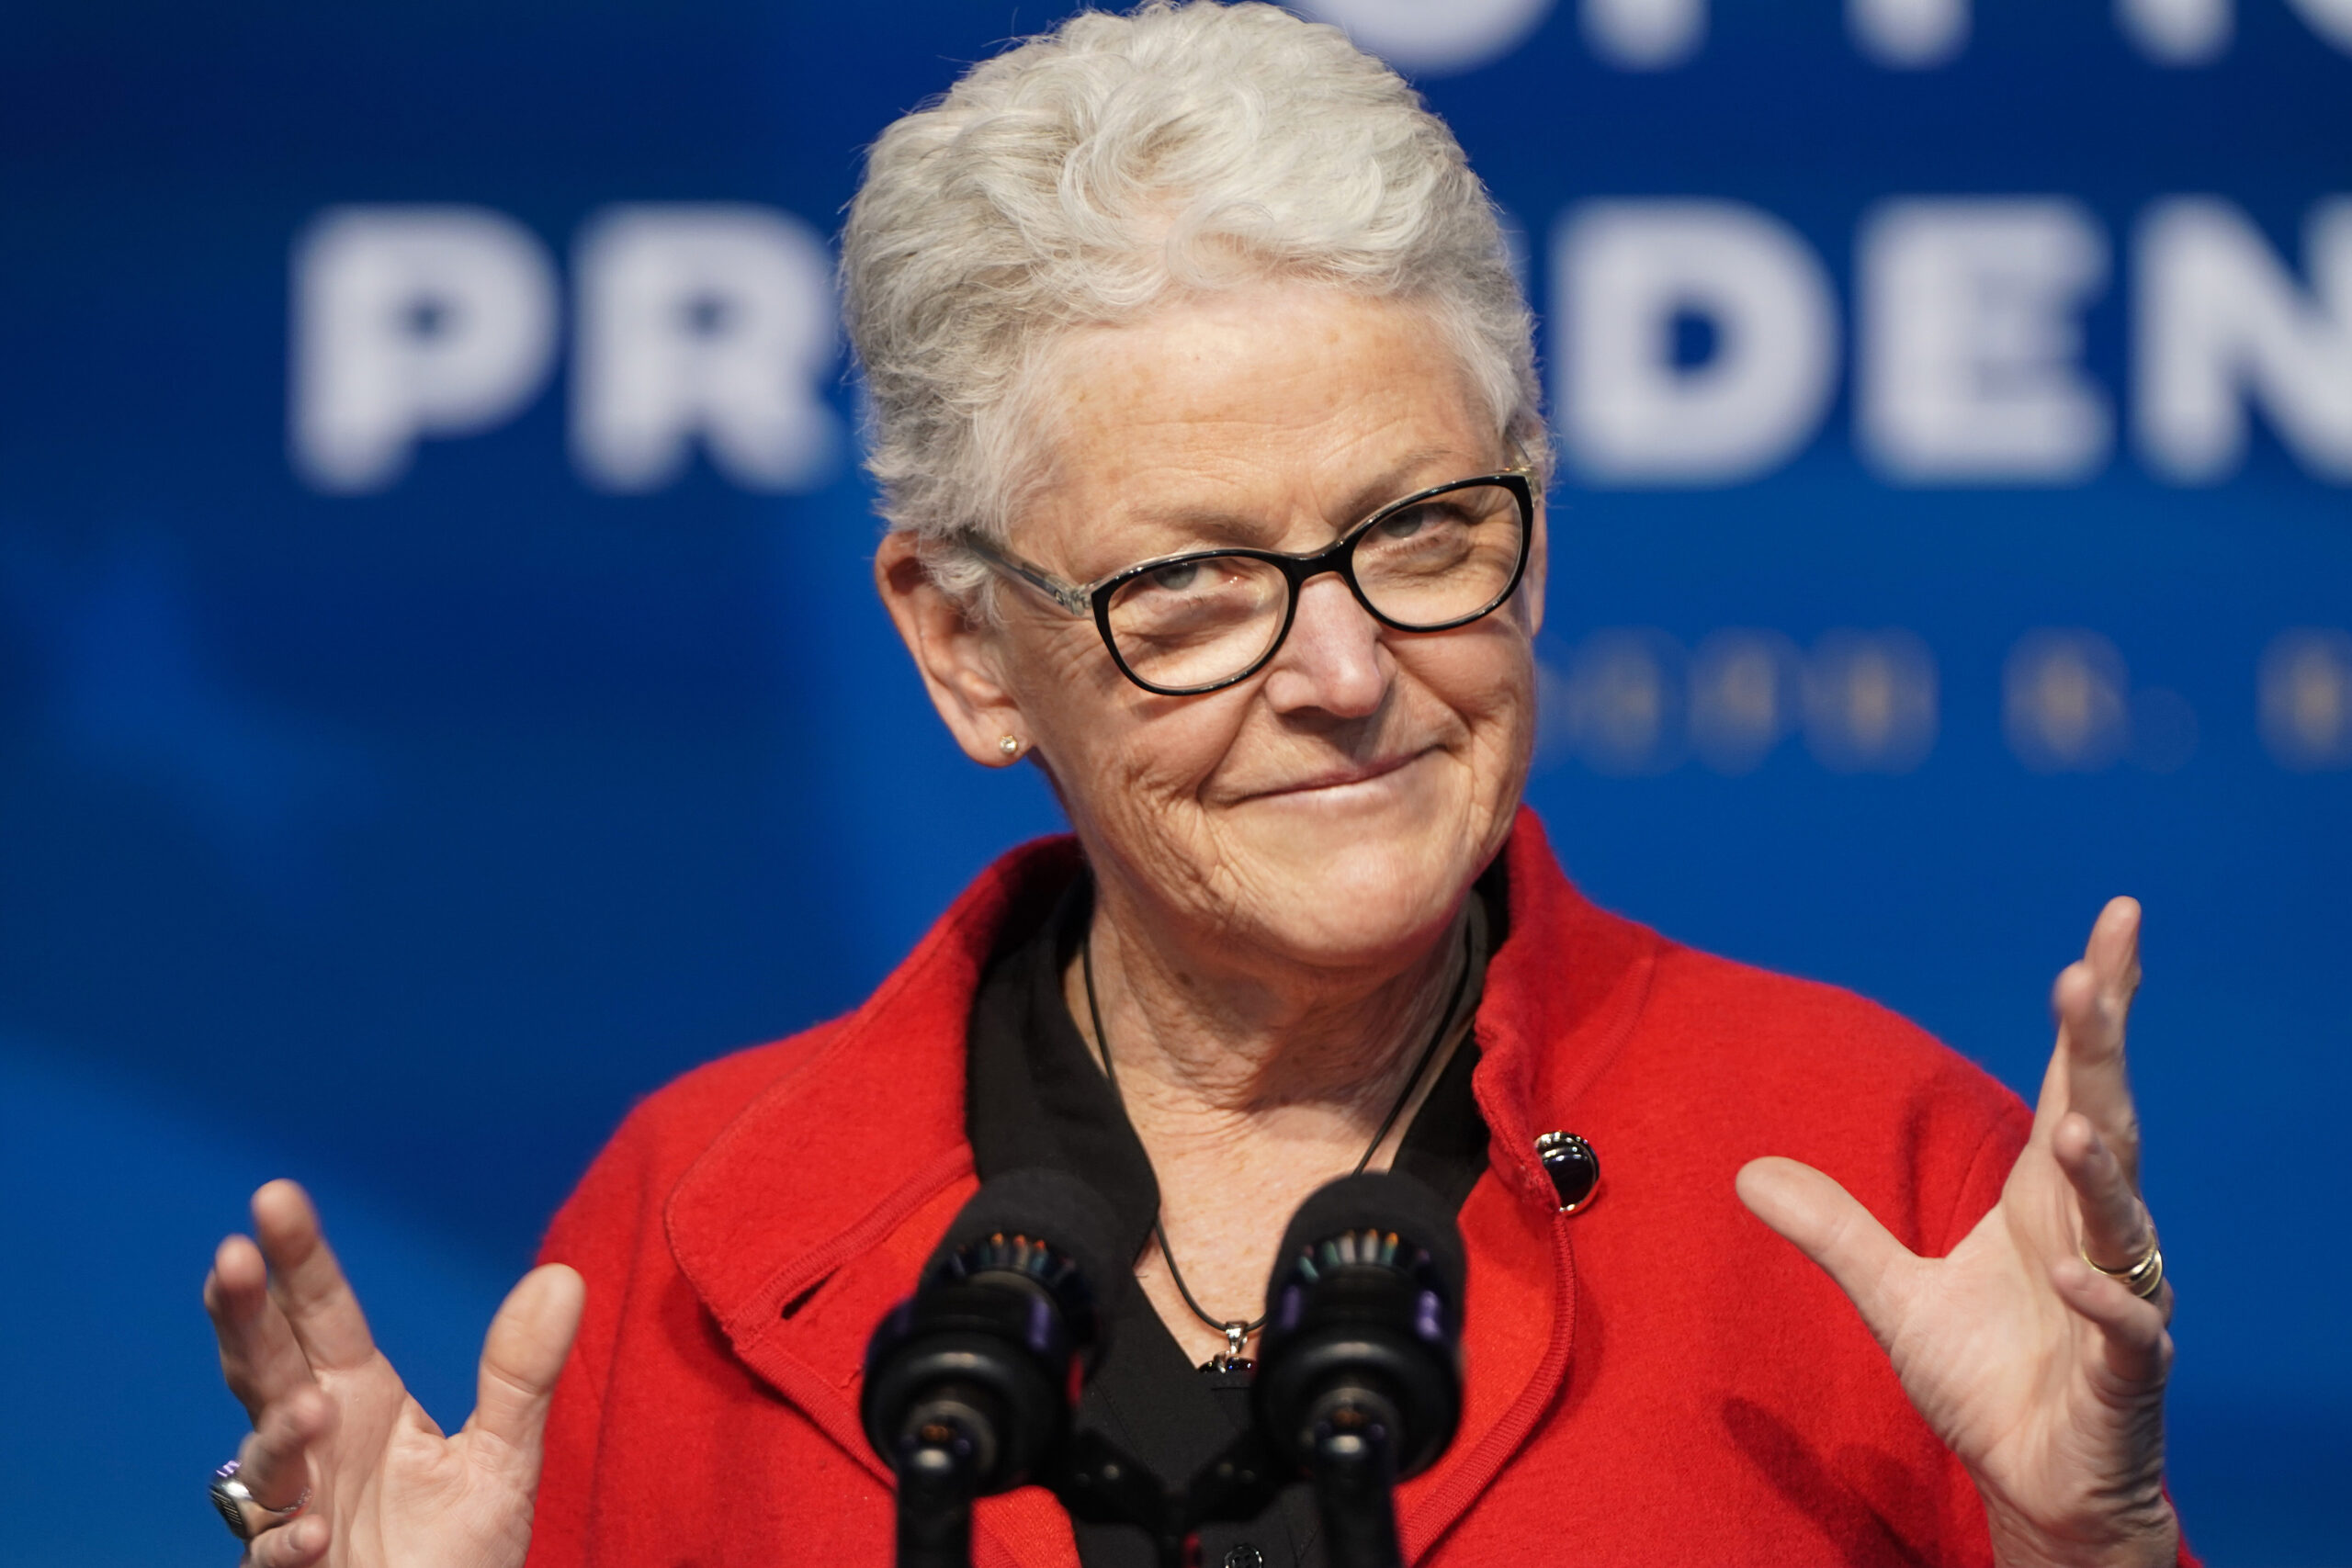 Gina McCarthy, the White House National Climate Advisor, speaks at the Queen theater on December 19, 2020 in Wilmington, DE. Credit: Joshua Roberts/Getty Images